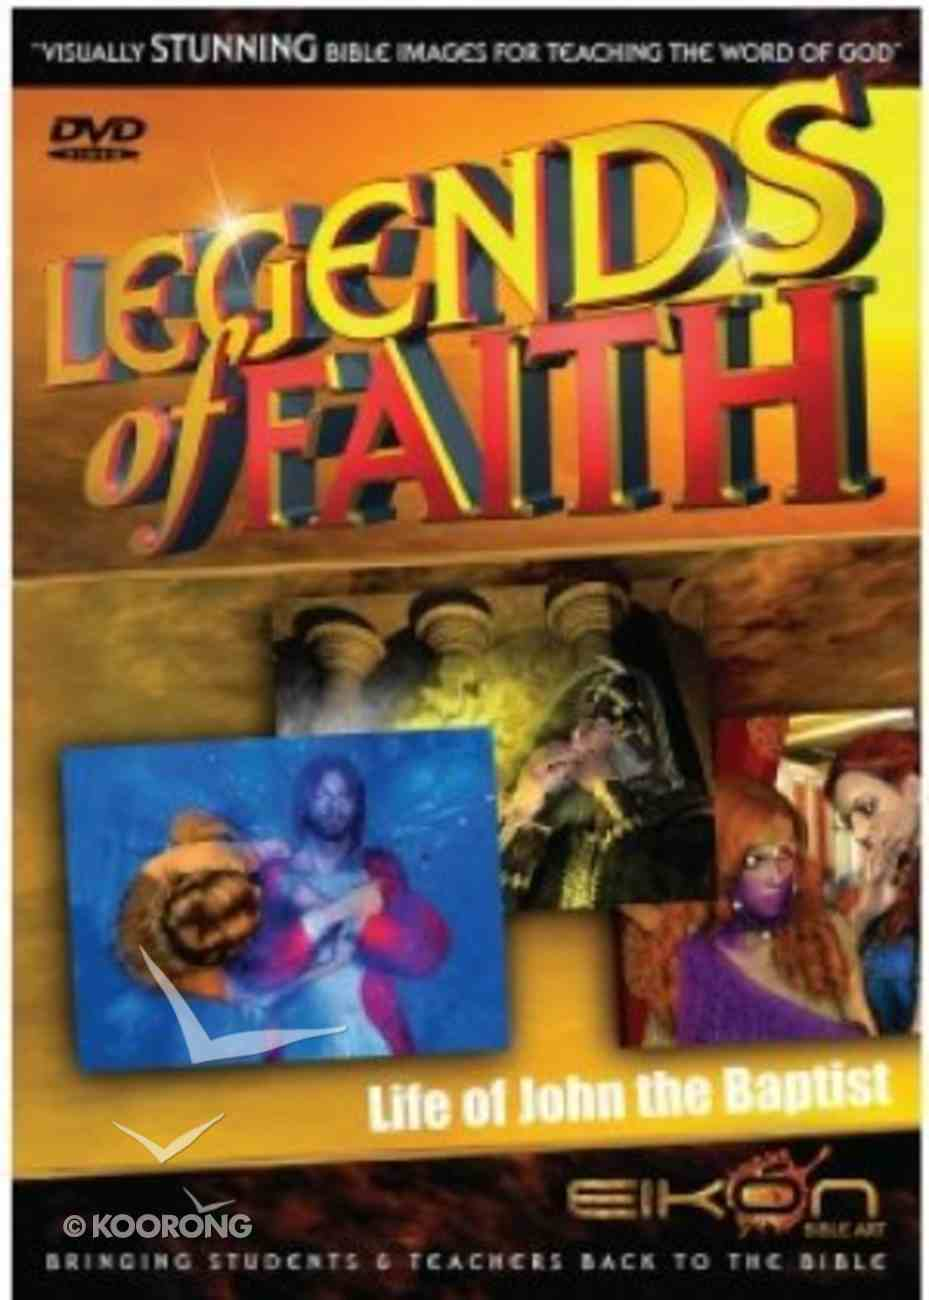 Life of John the Baptist (DVD Rom) (Legends Of Faith Dvd Series) Dvd-rom